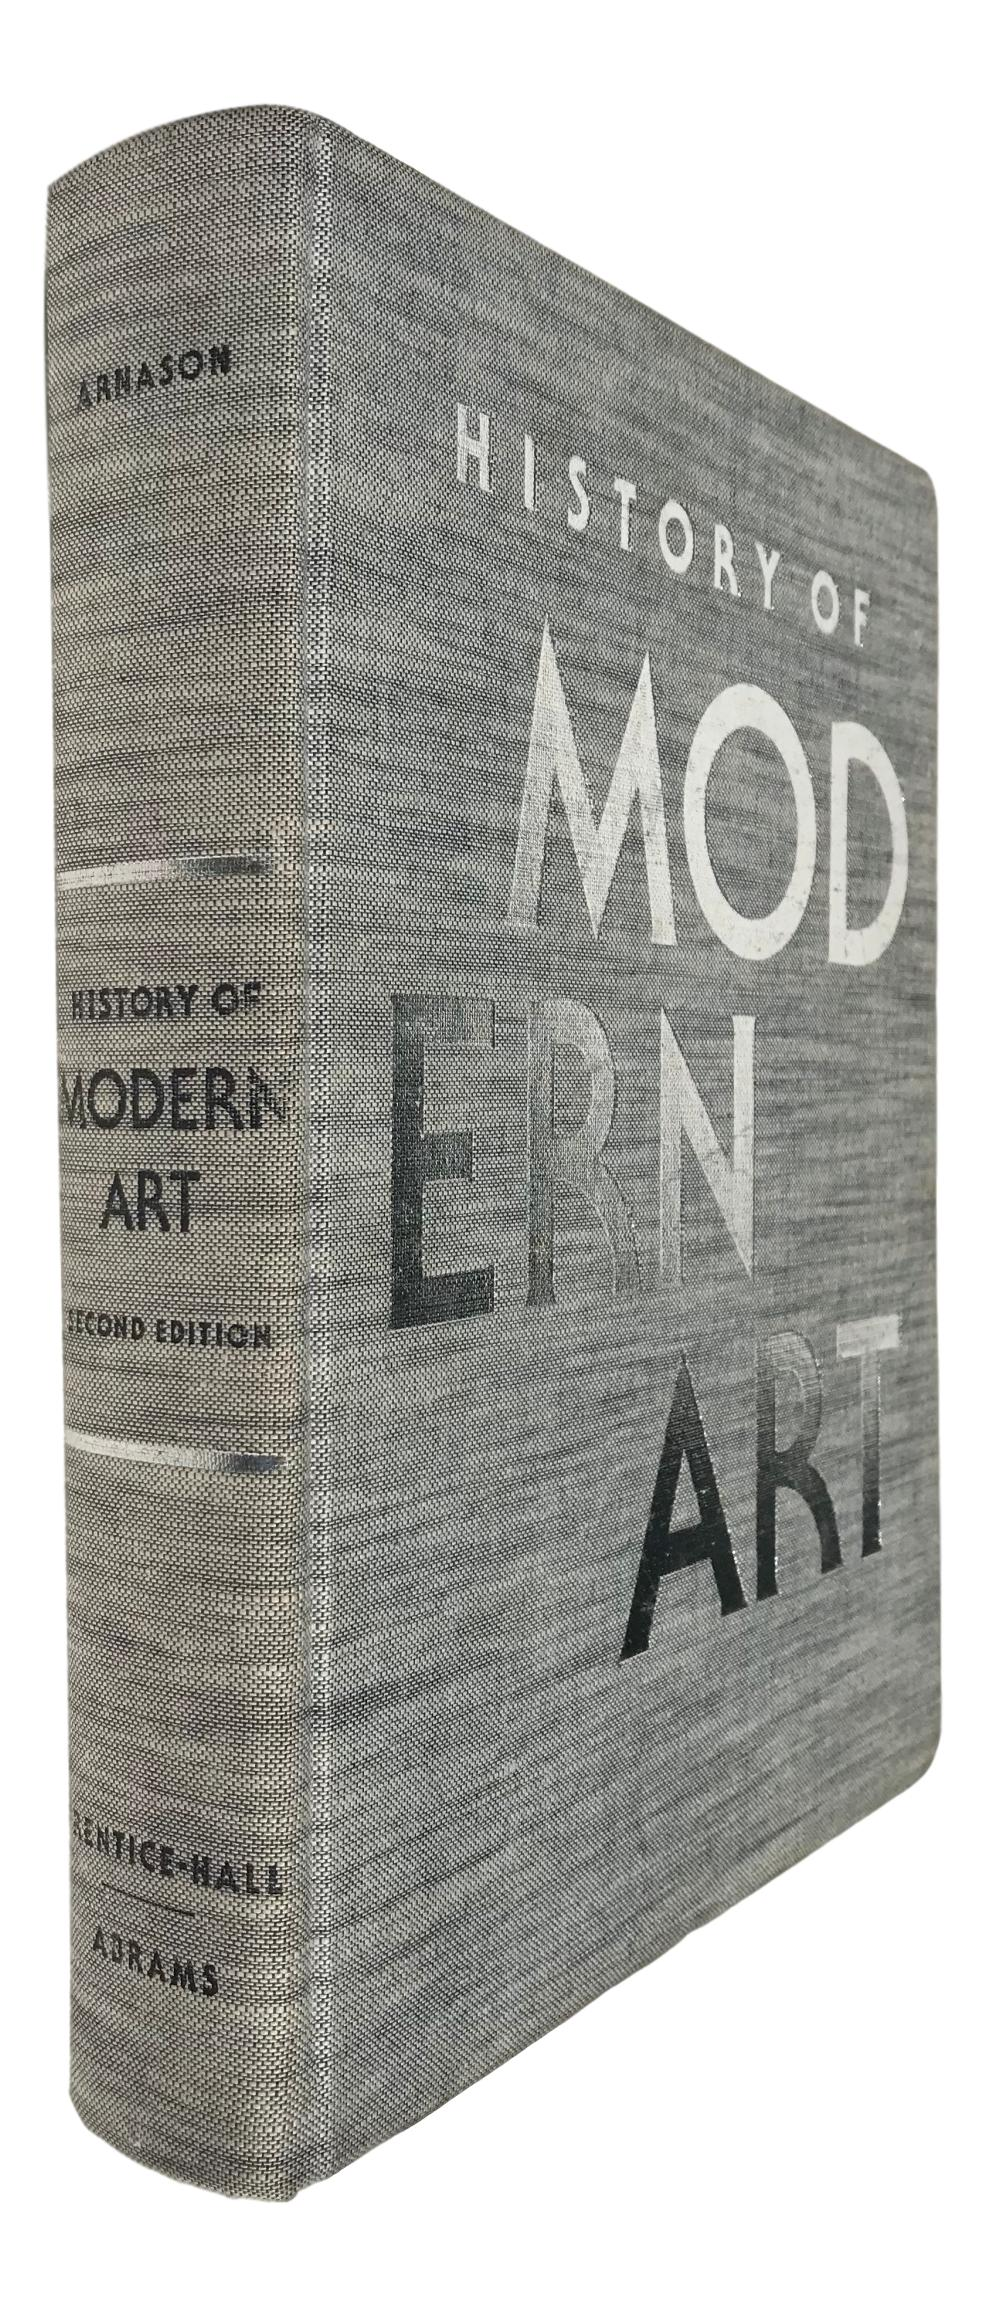 surprising Huge Coffee Table Books Part - 4: Vintage History of Modern Art Oversized Coffee Table Book